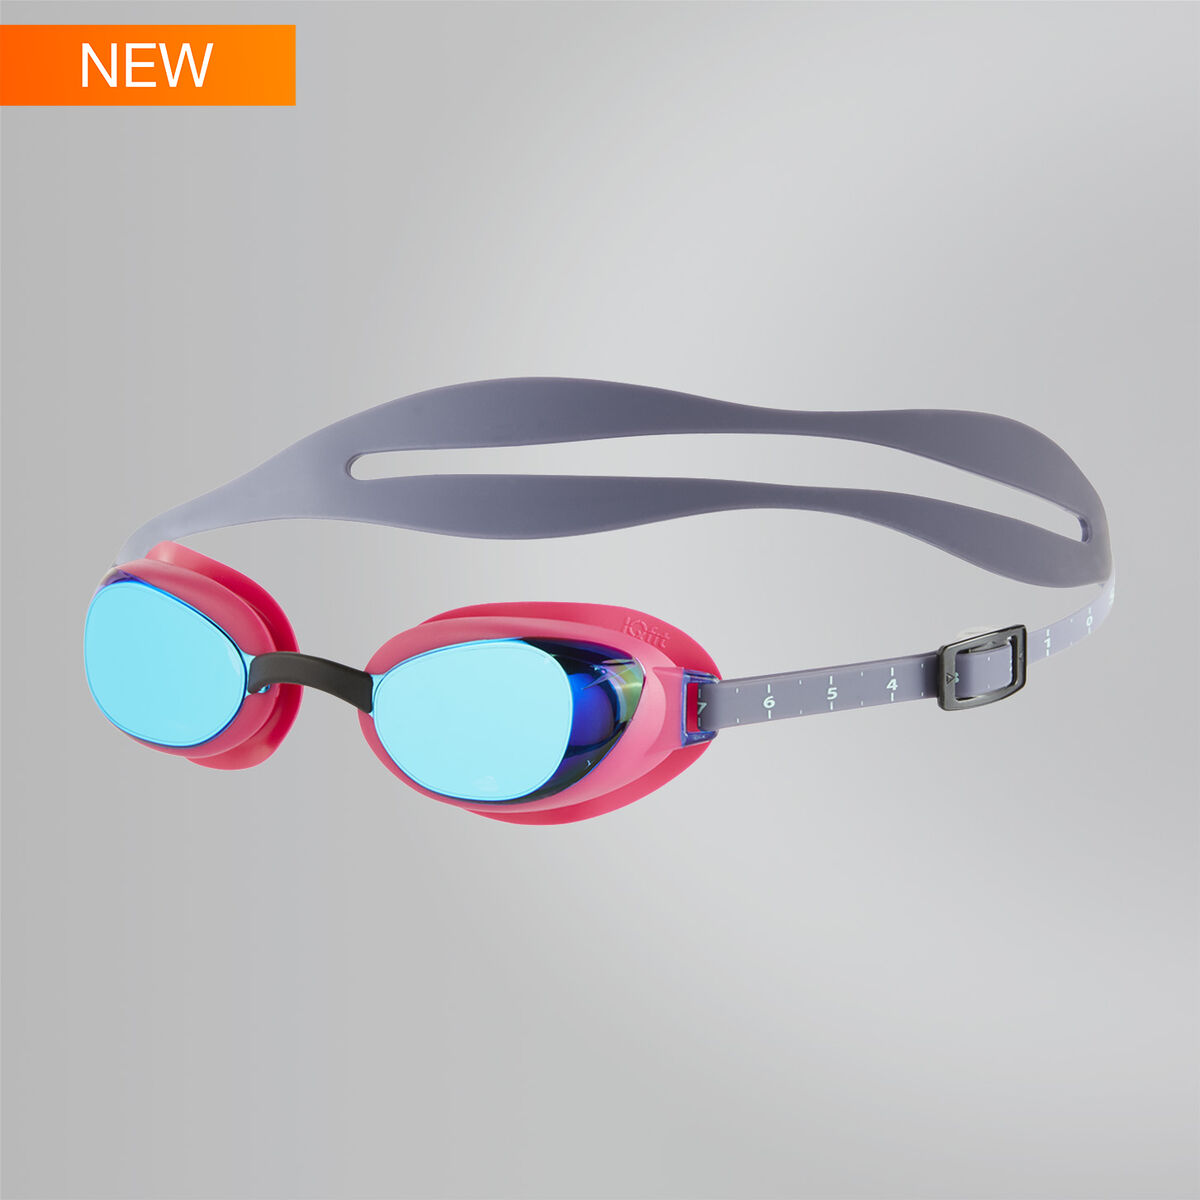 Aquapure Mirror Female Goggle